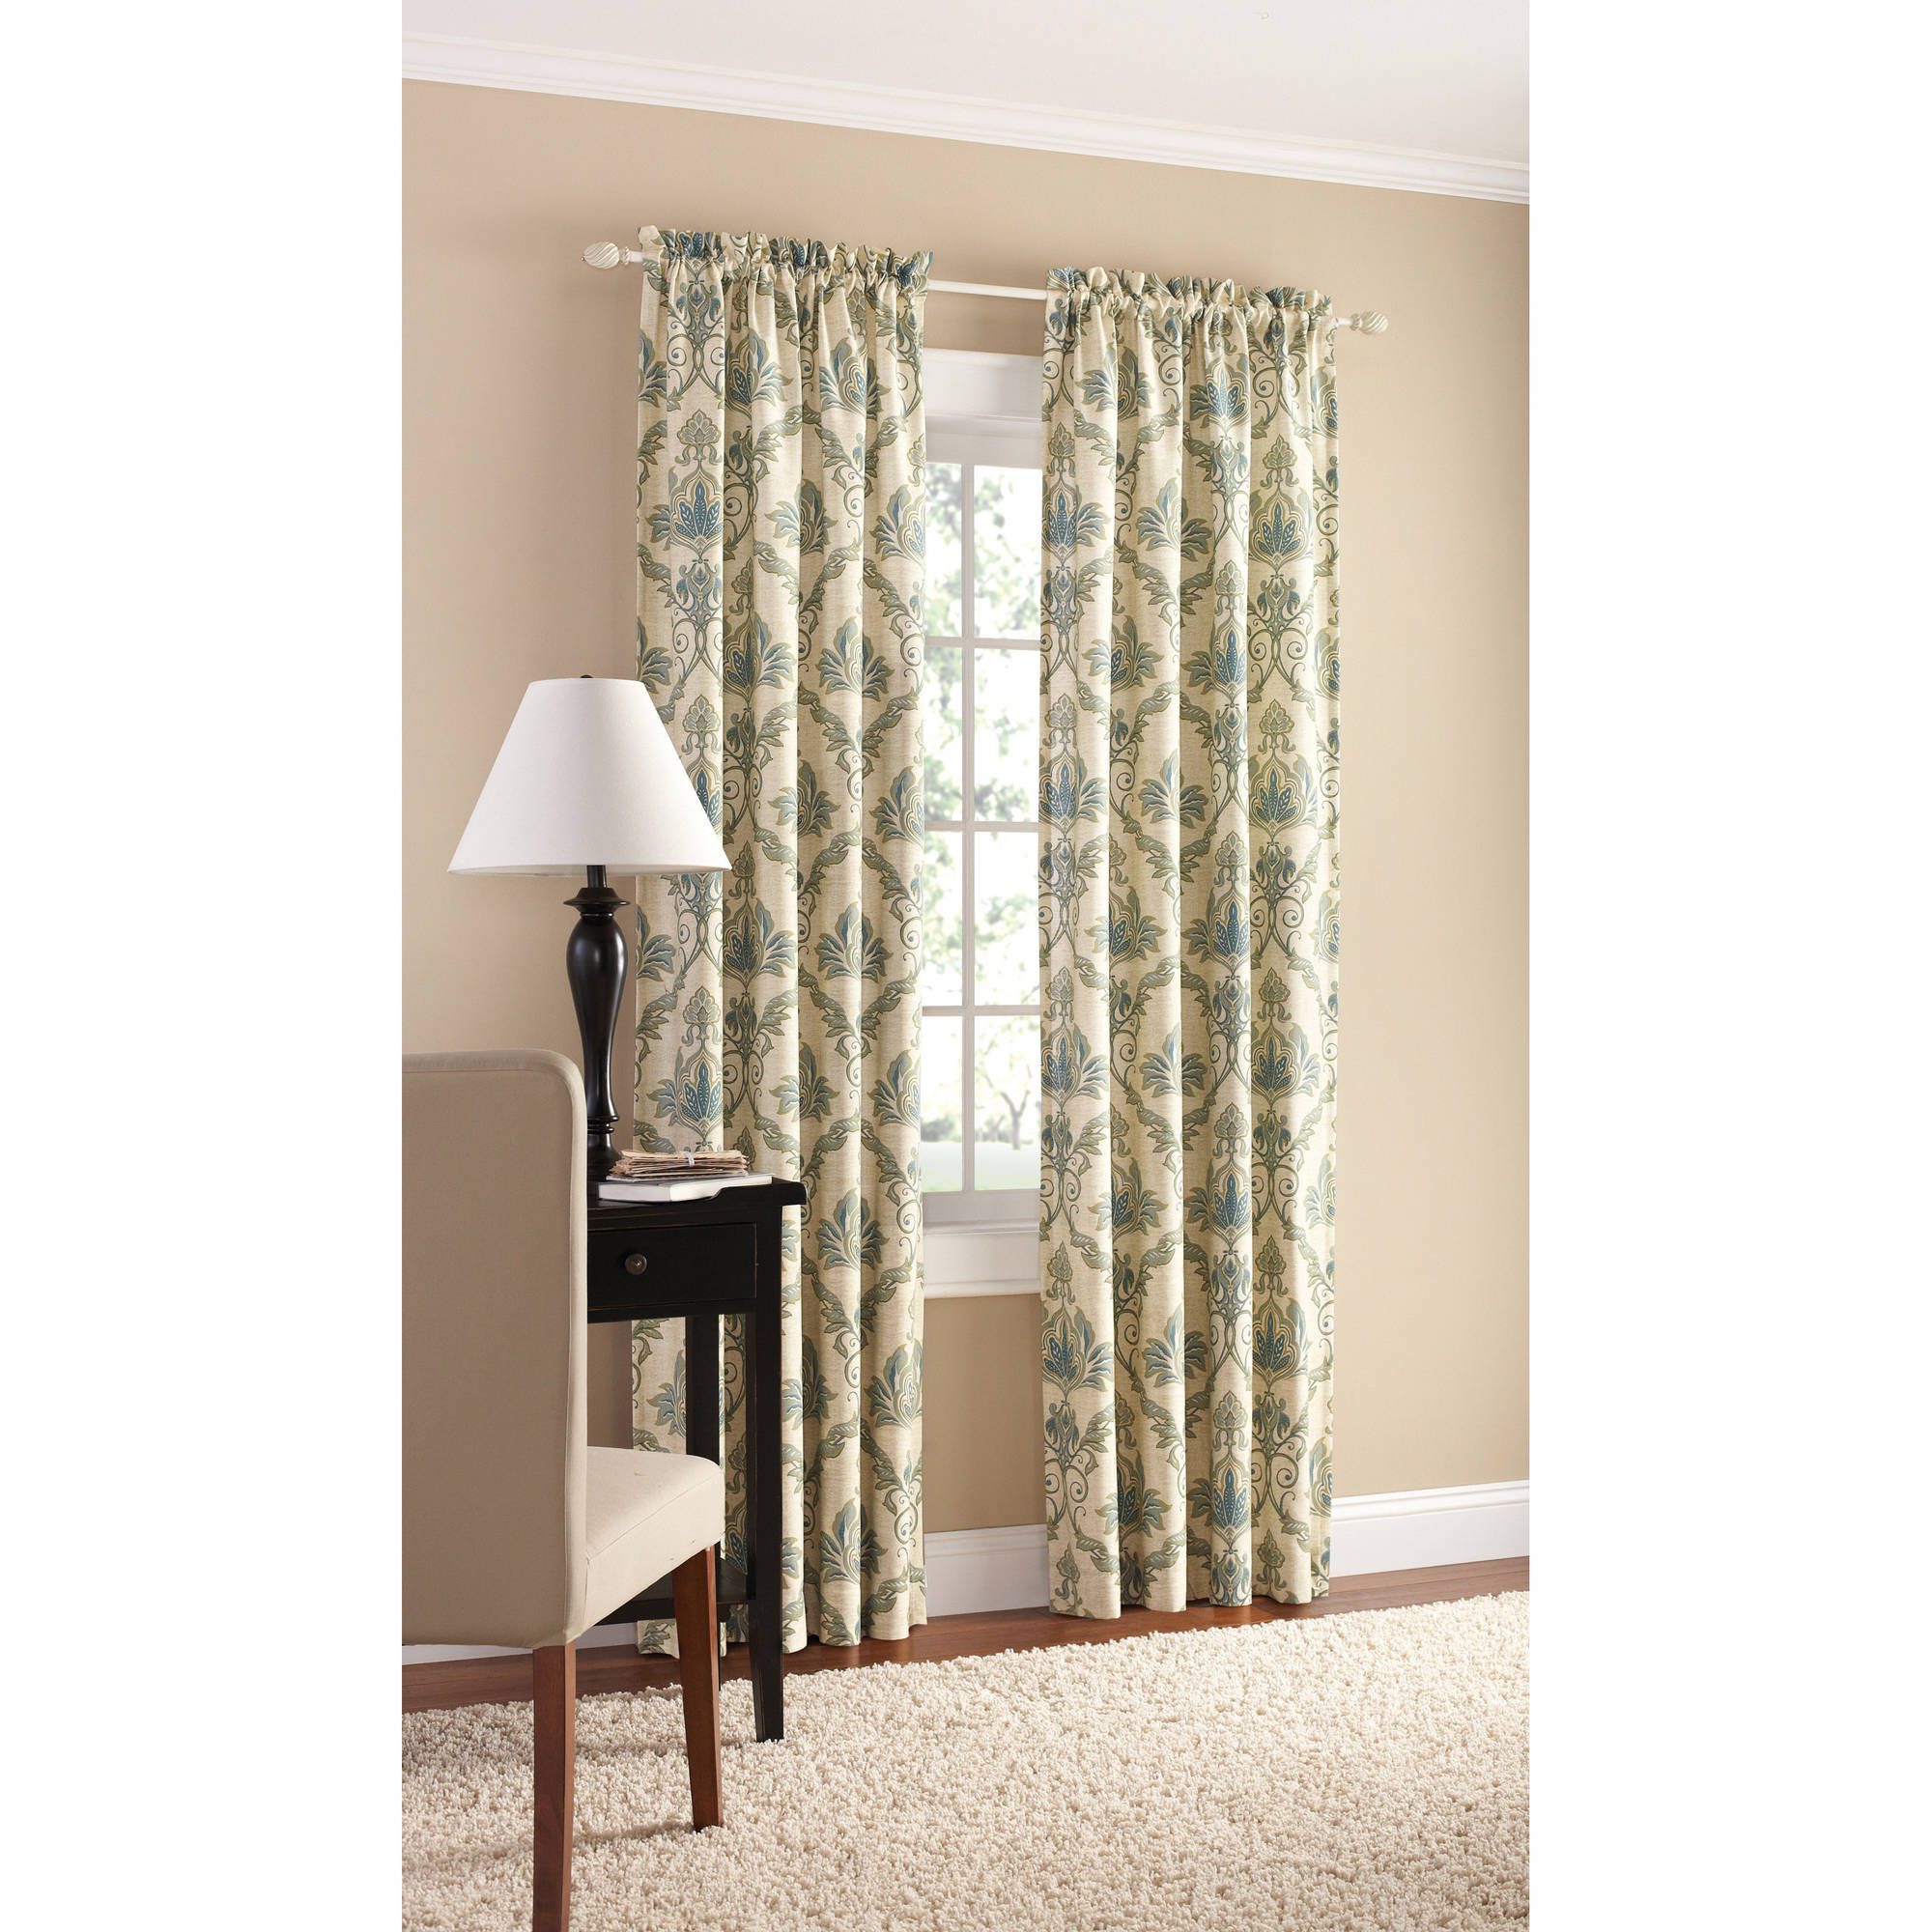 Mainstays Canvas European Damask Heavyweight Curtain Panel, Set of 2